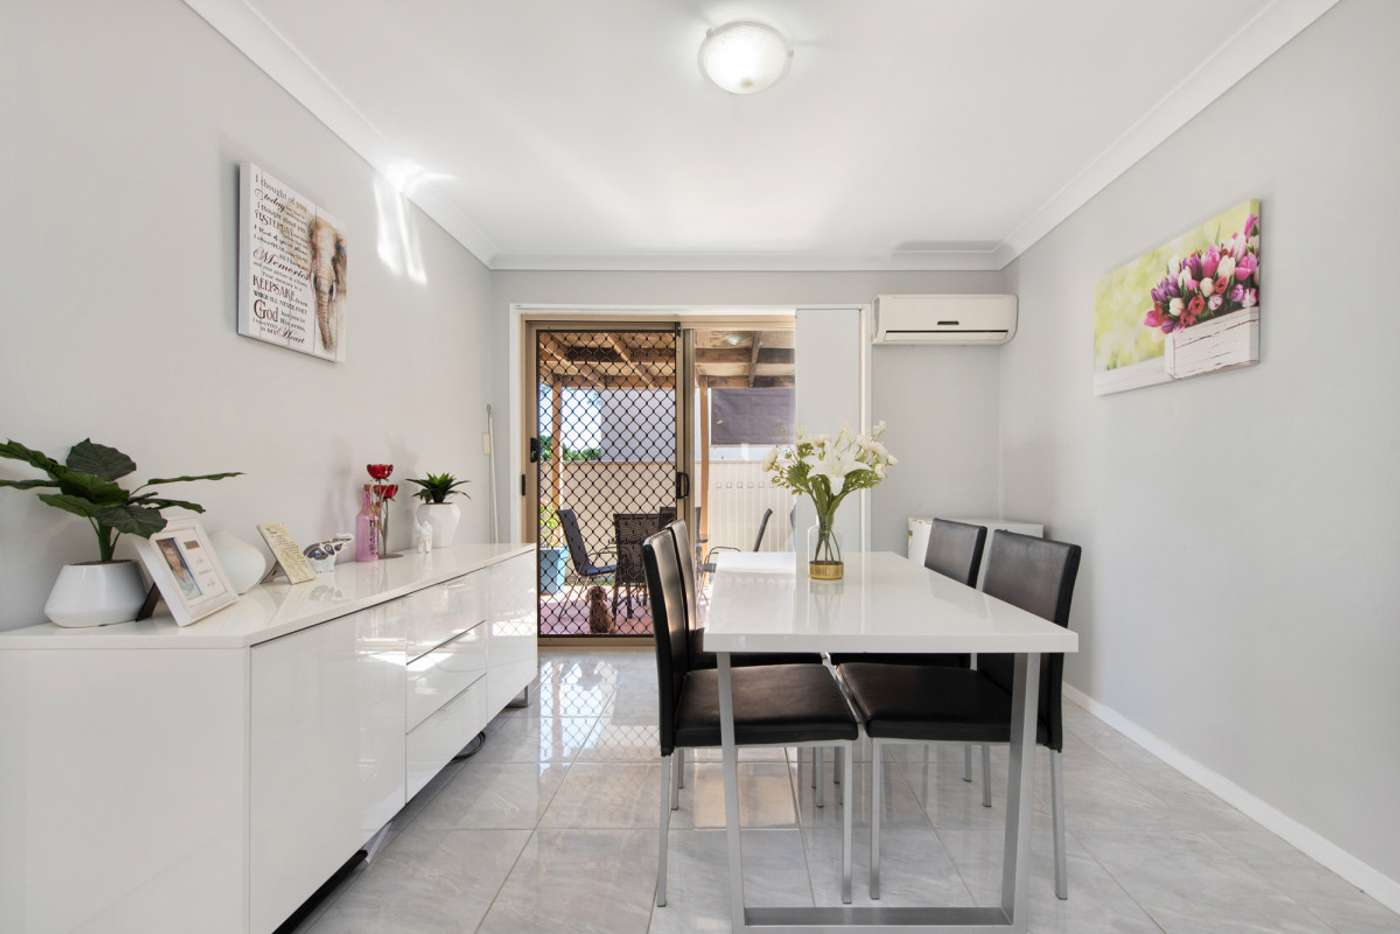 Sixth view of Homely townhouse listing, 36/22 Dasyure Place, Wynnum West QLD 4178